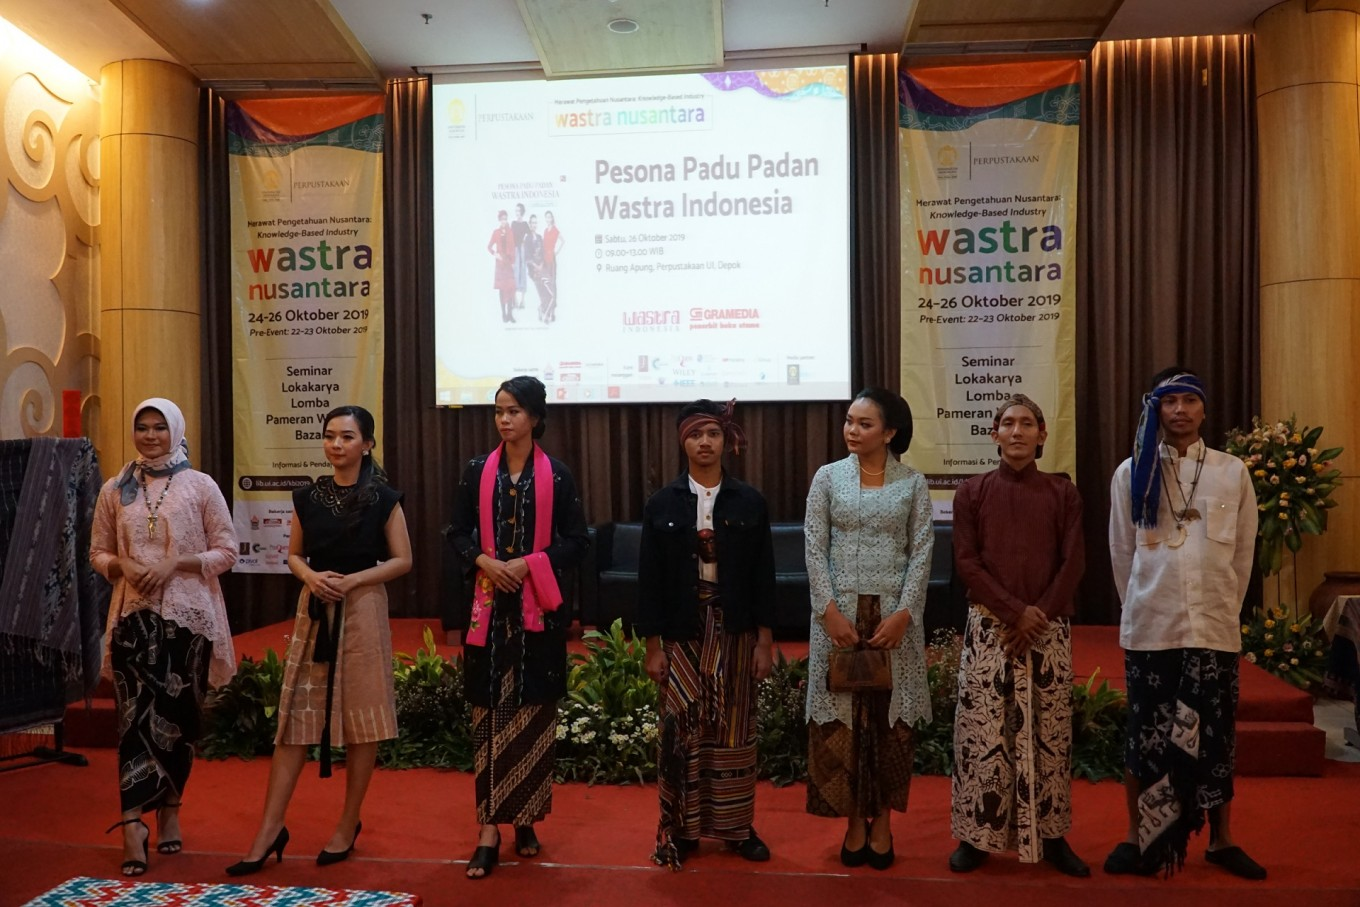 Looking stylish and spot-on in Indonesian 'wastra'